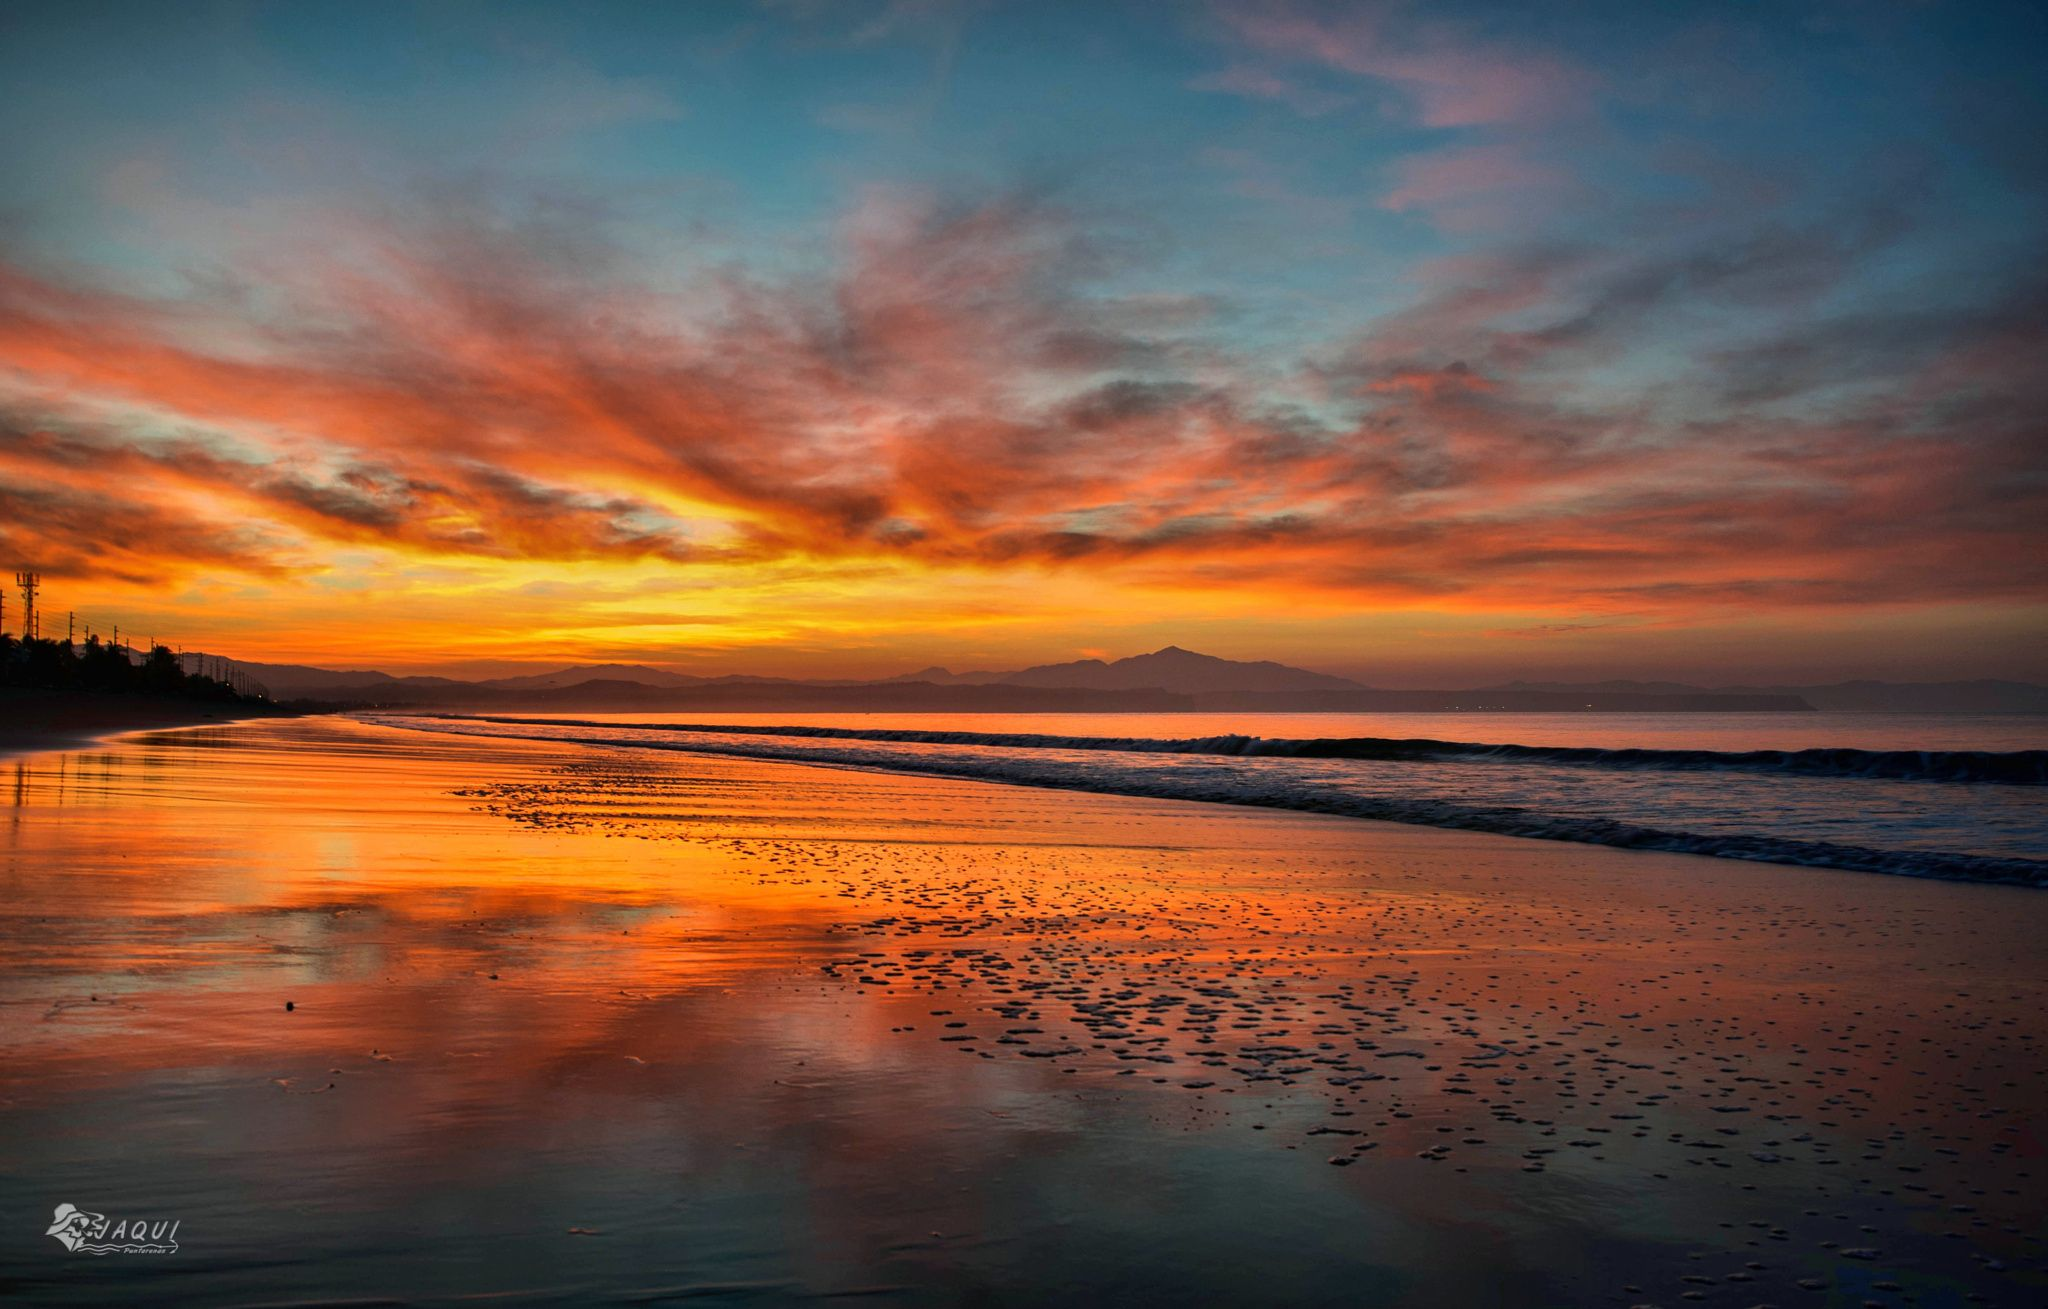 Photograph Amanecer en Playa Cocalito by Johnny  Aguilar on 500px